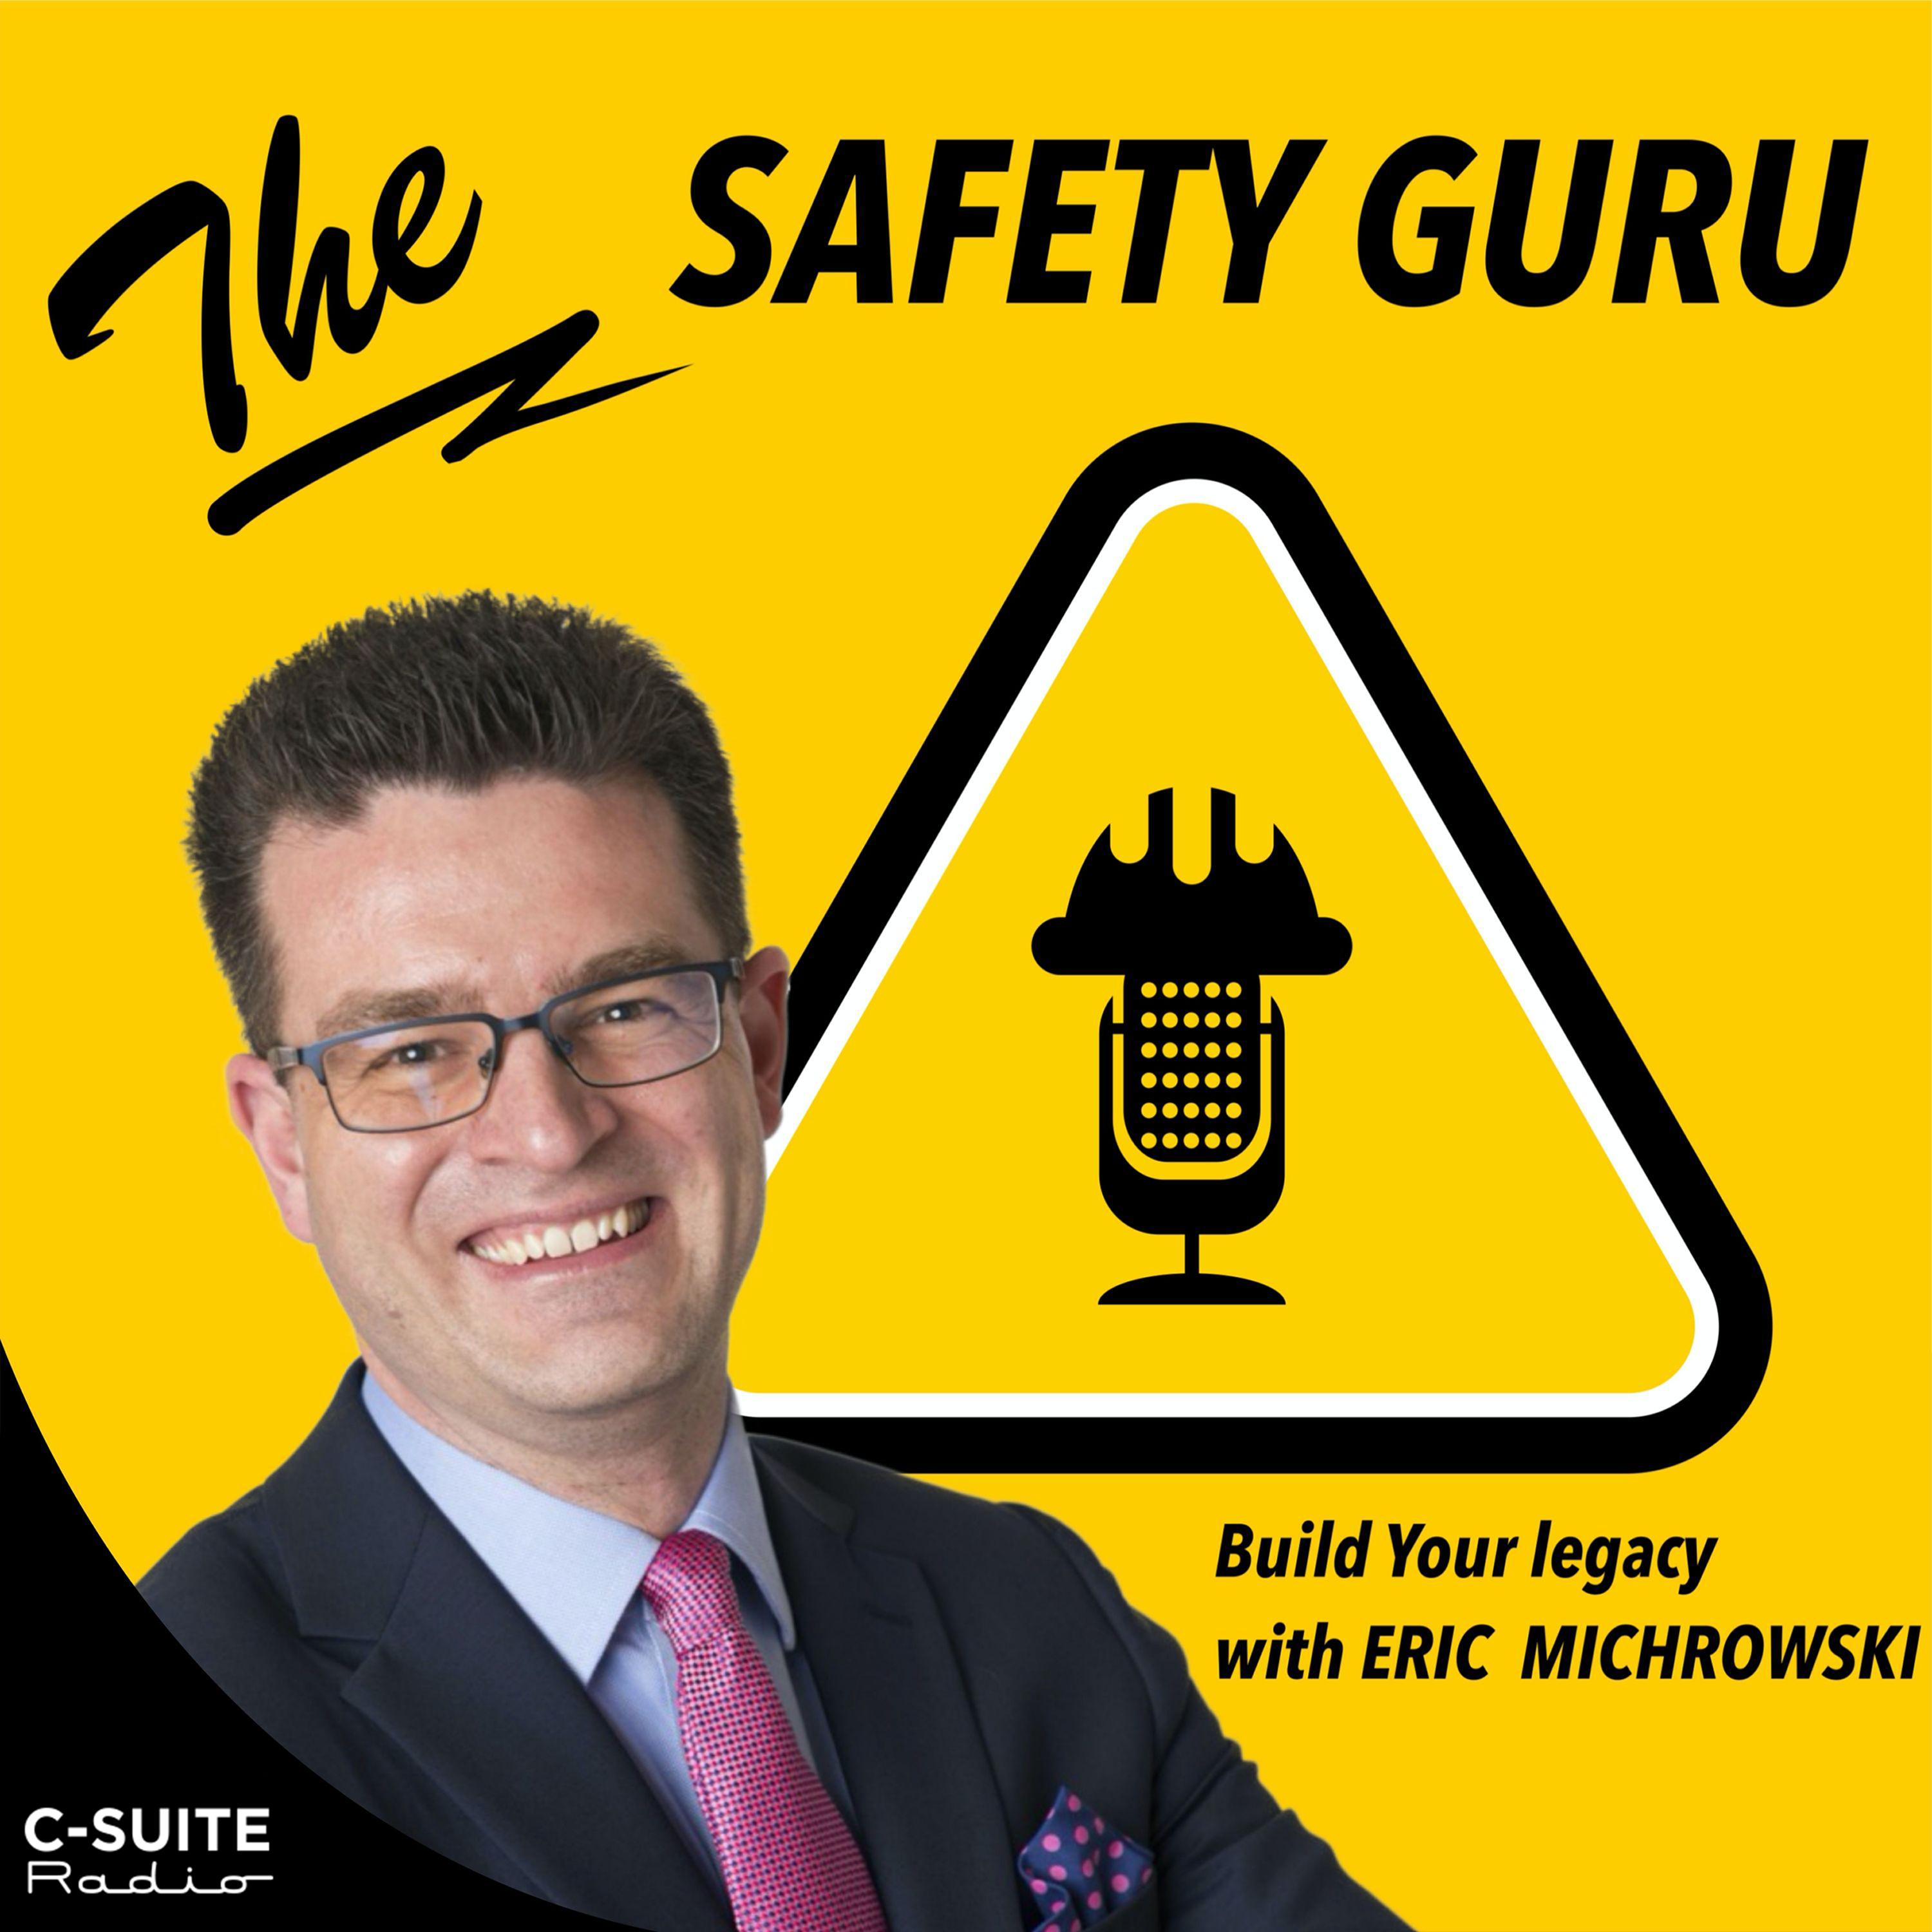 The Safety Guru